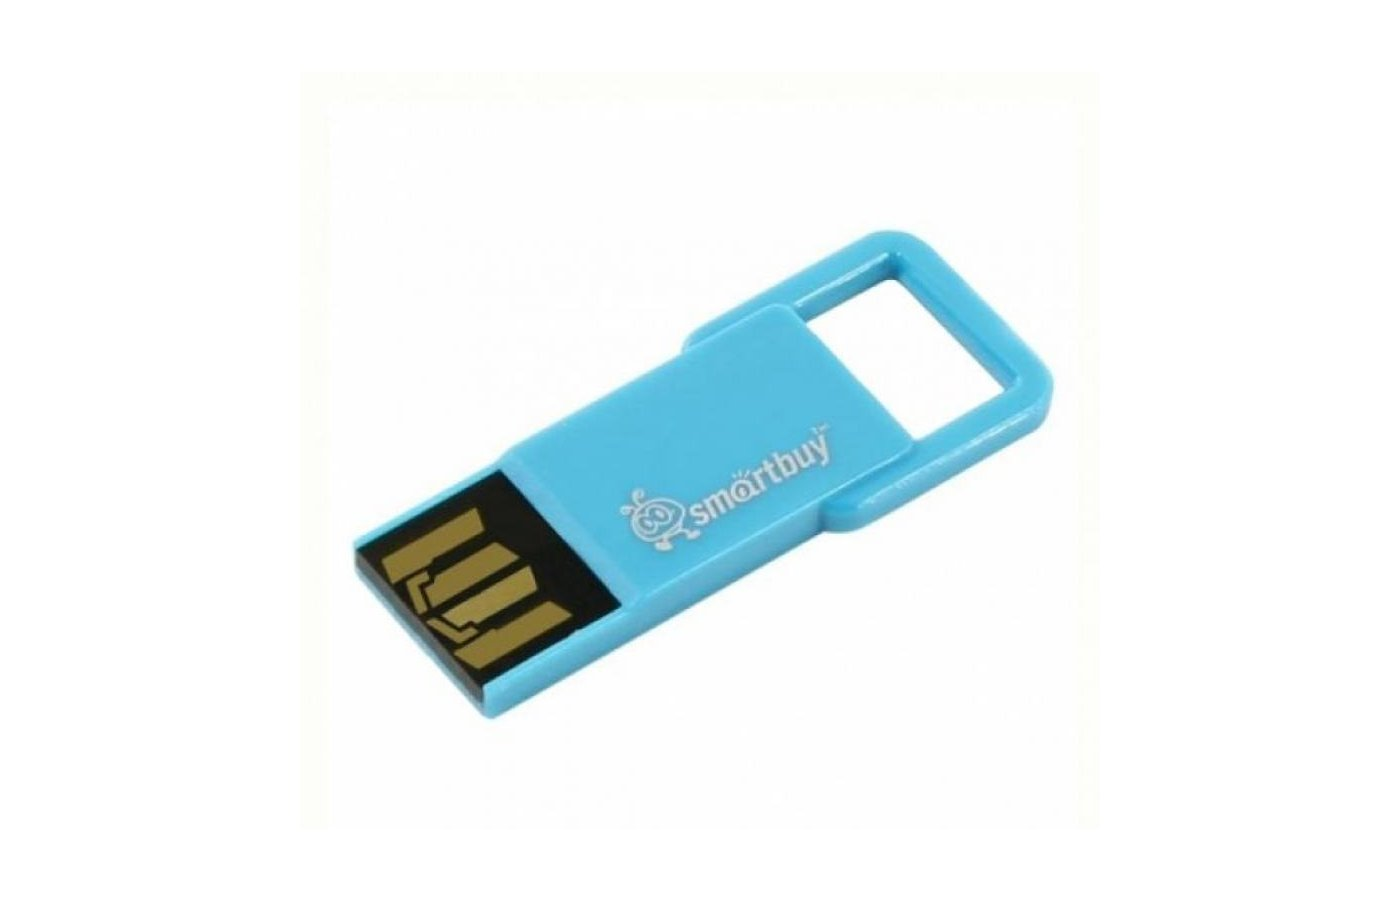 Флеш-диск USB 2.0 SmartBuy 8GB BIZ Blue